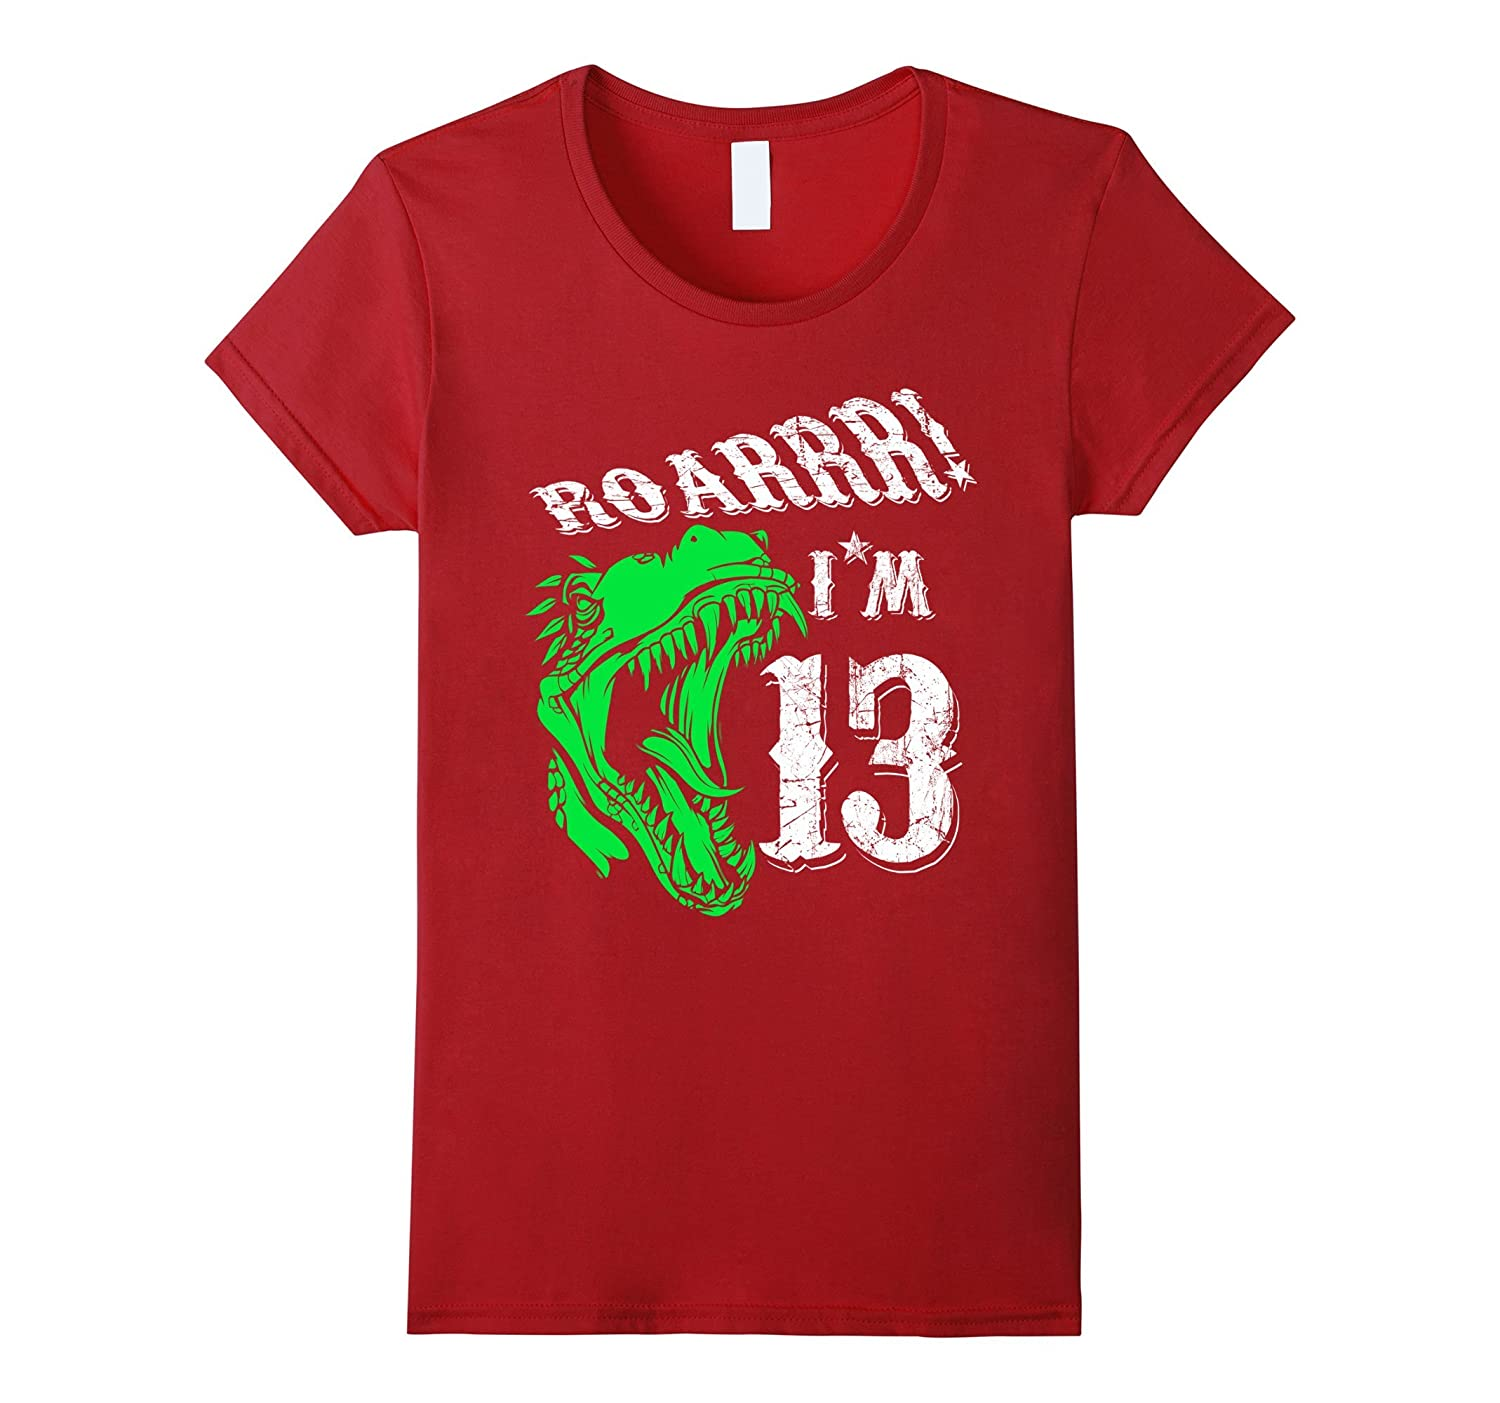 13 years old 13th Birthday T-Shirt – Dinosaur Tee For Boys